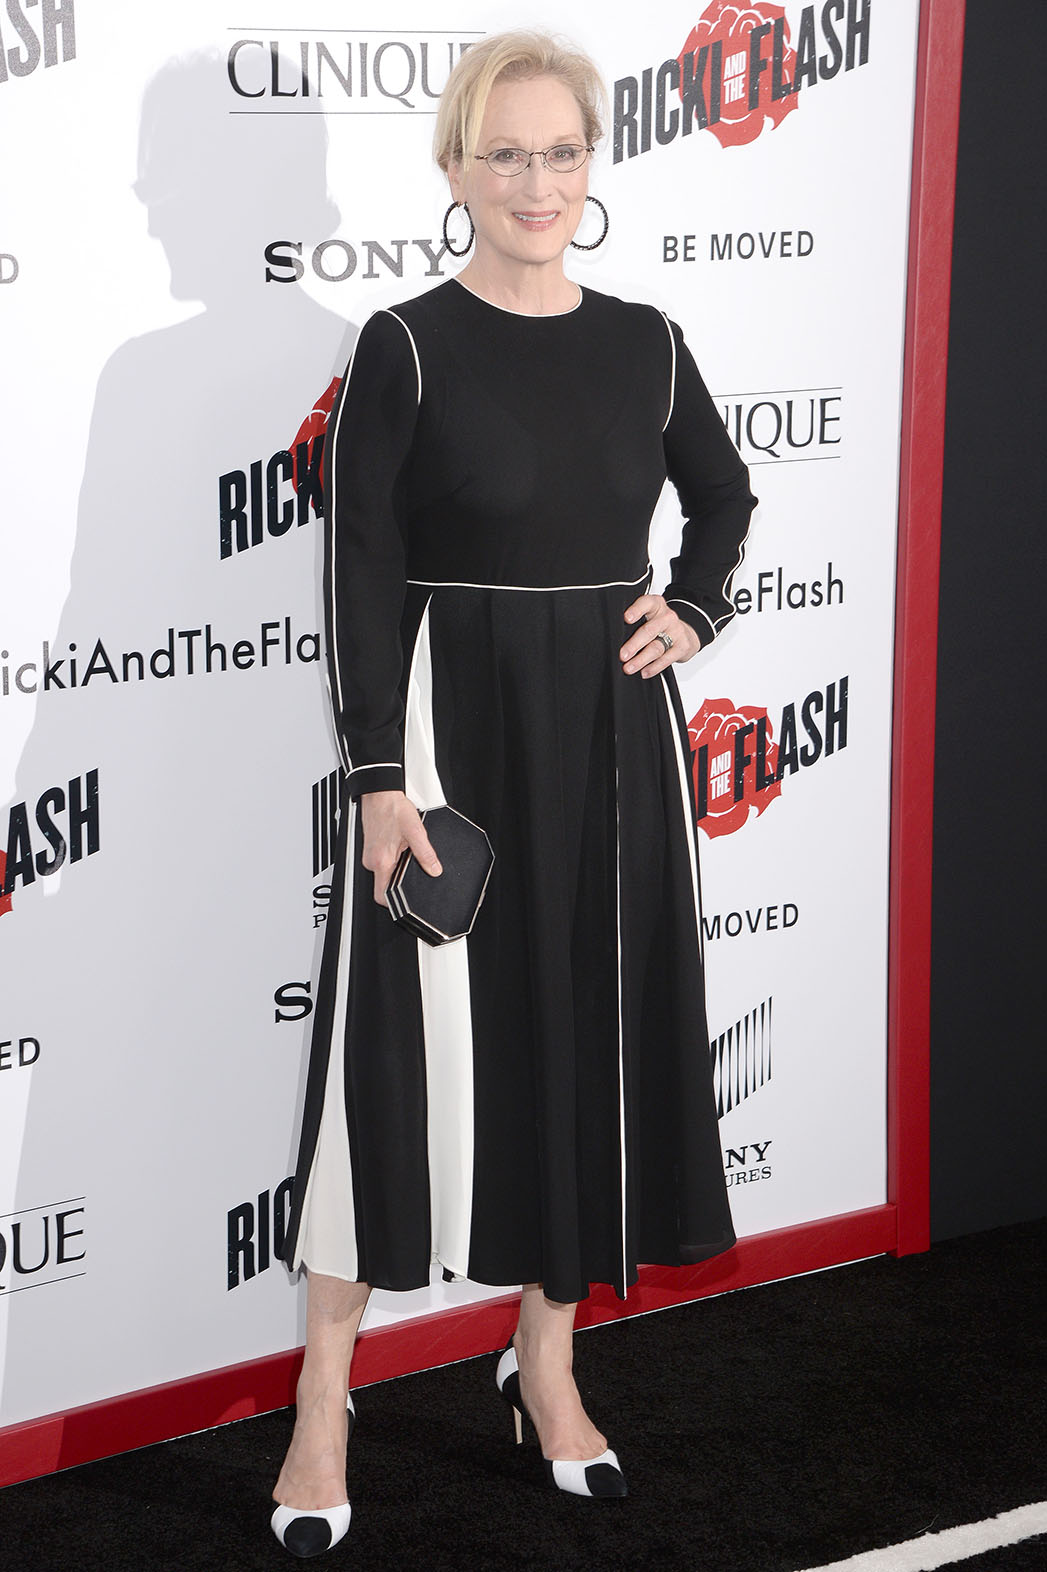 Meryl Streep Ricki and the Flash Premiere - P 2015